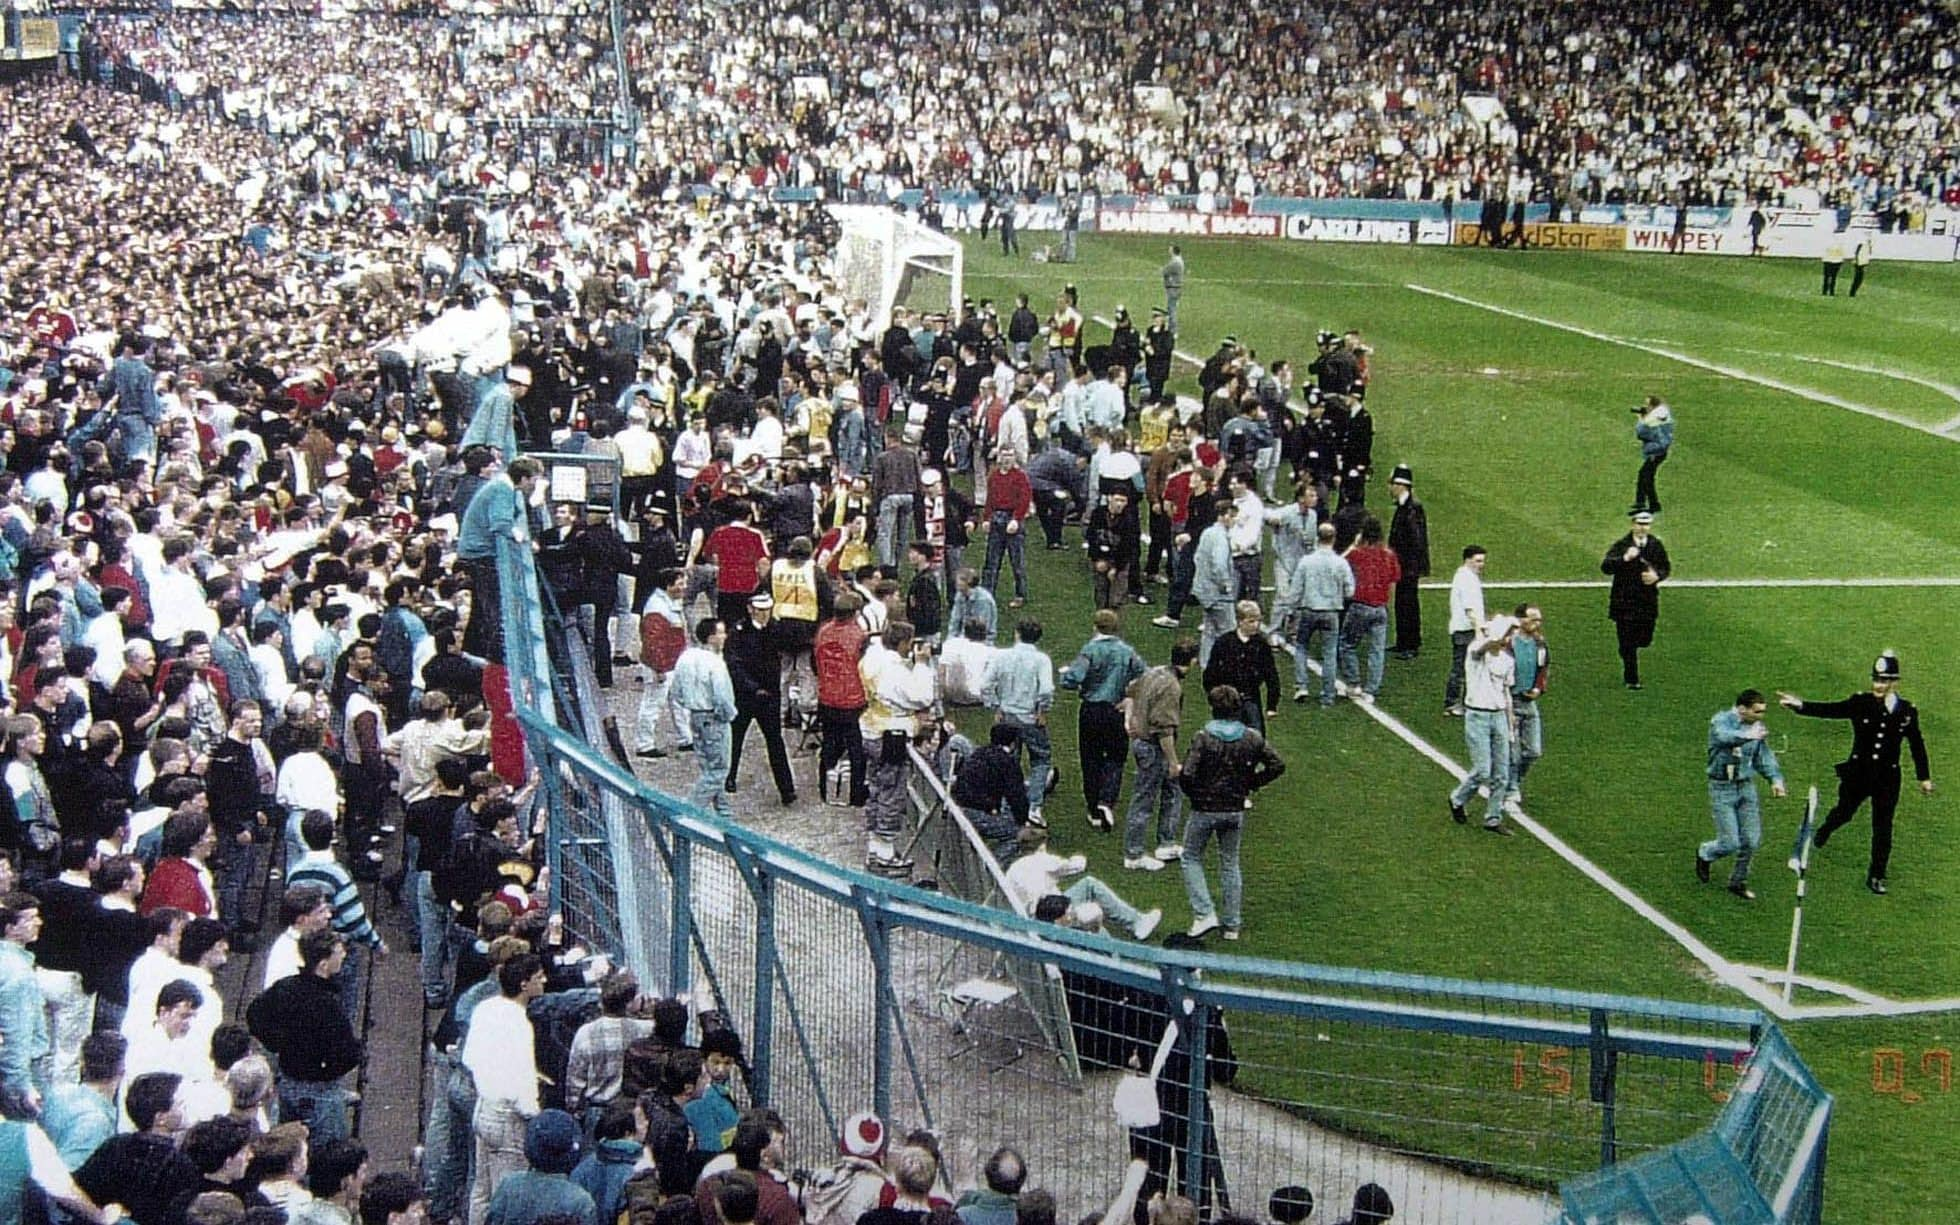 The tragic news this month has been all about the Hillsborough football Stadium disaster with near a hundred Liverpool fans dead.